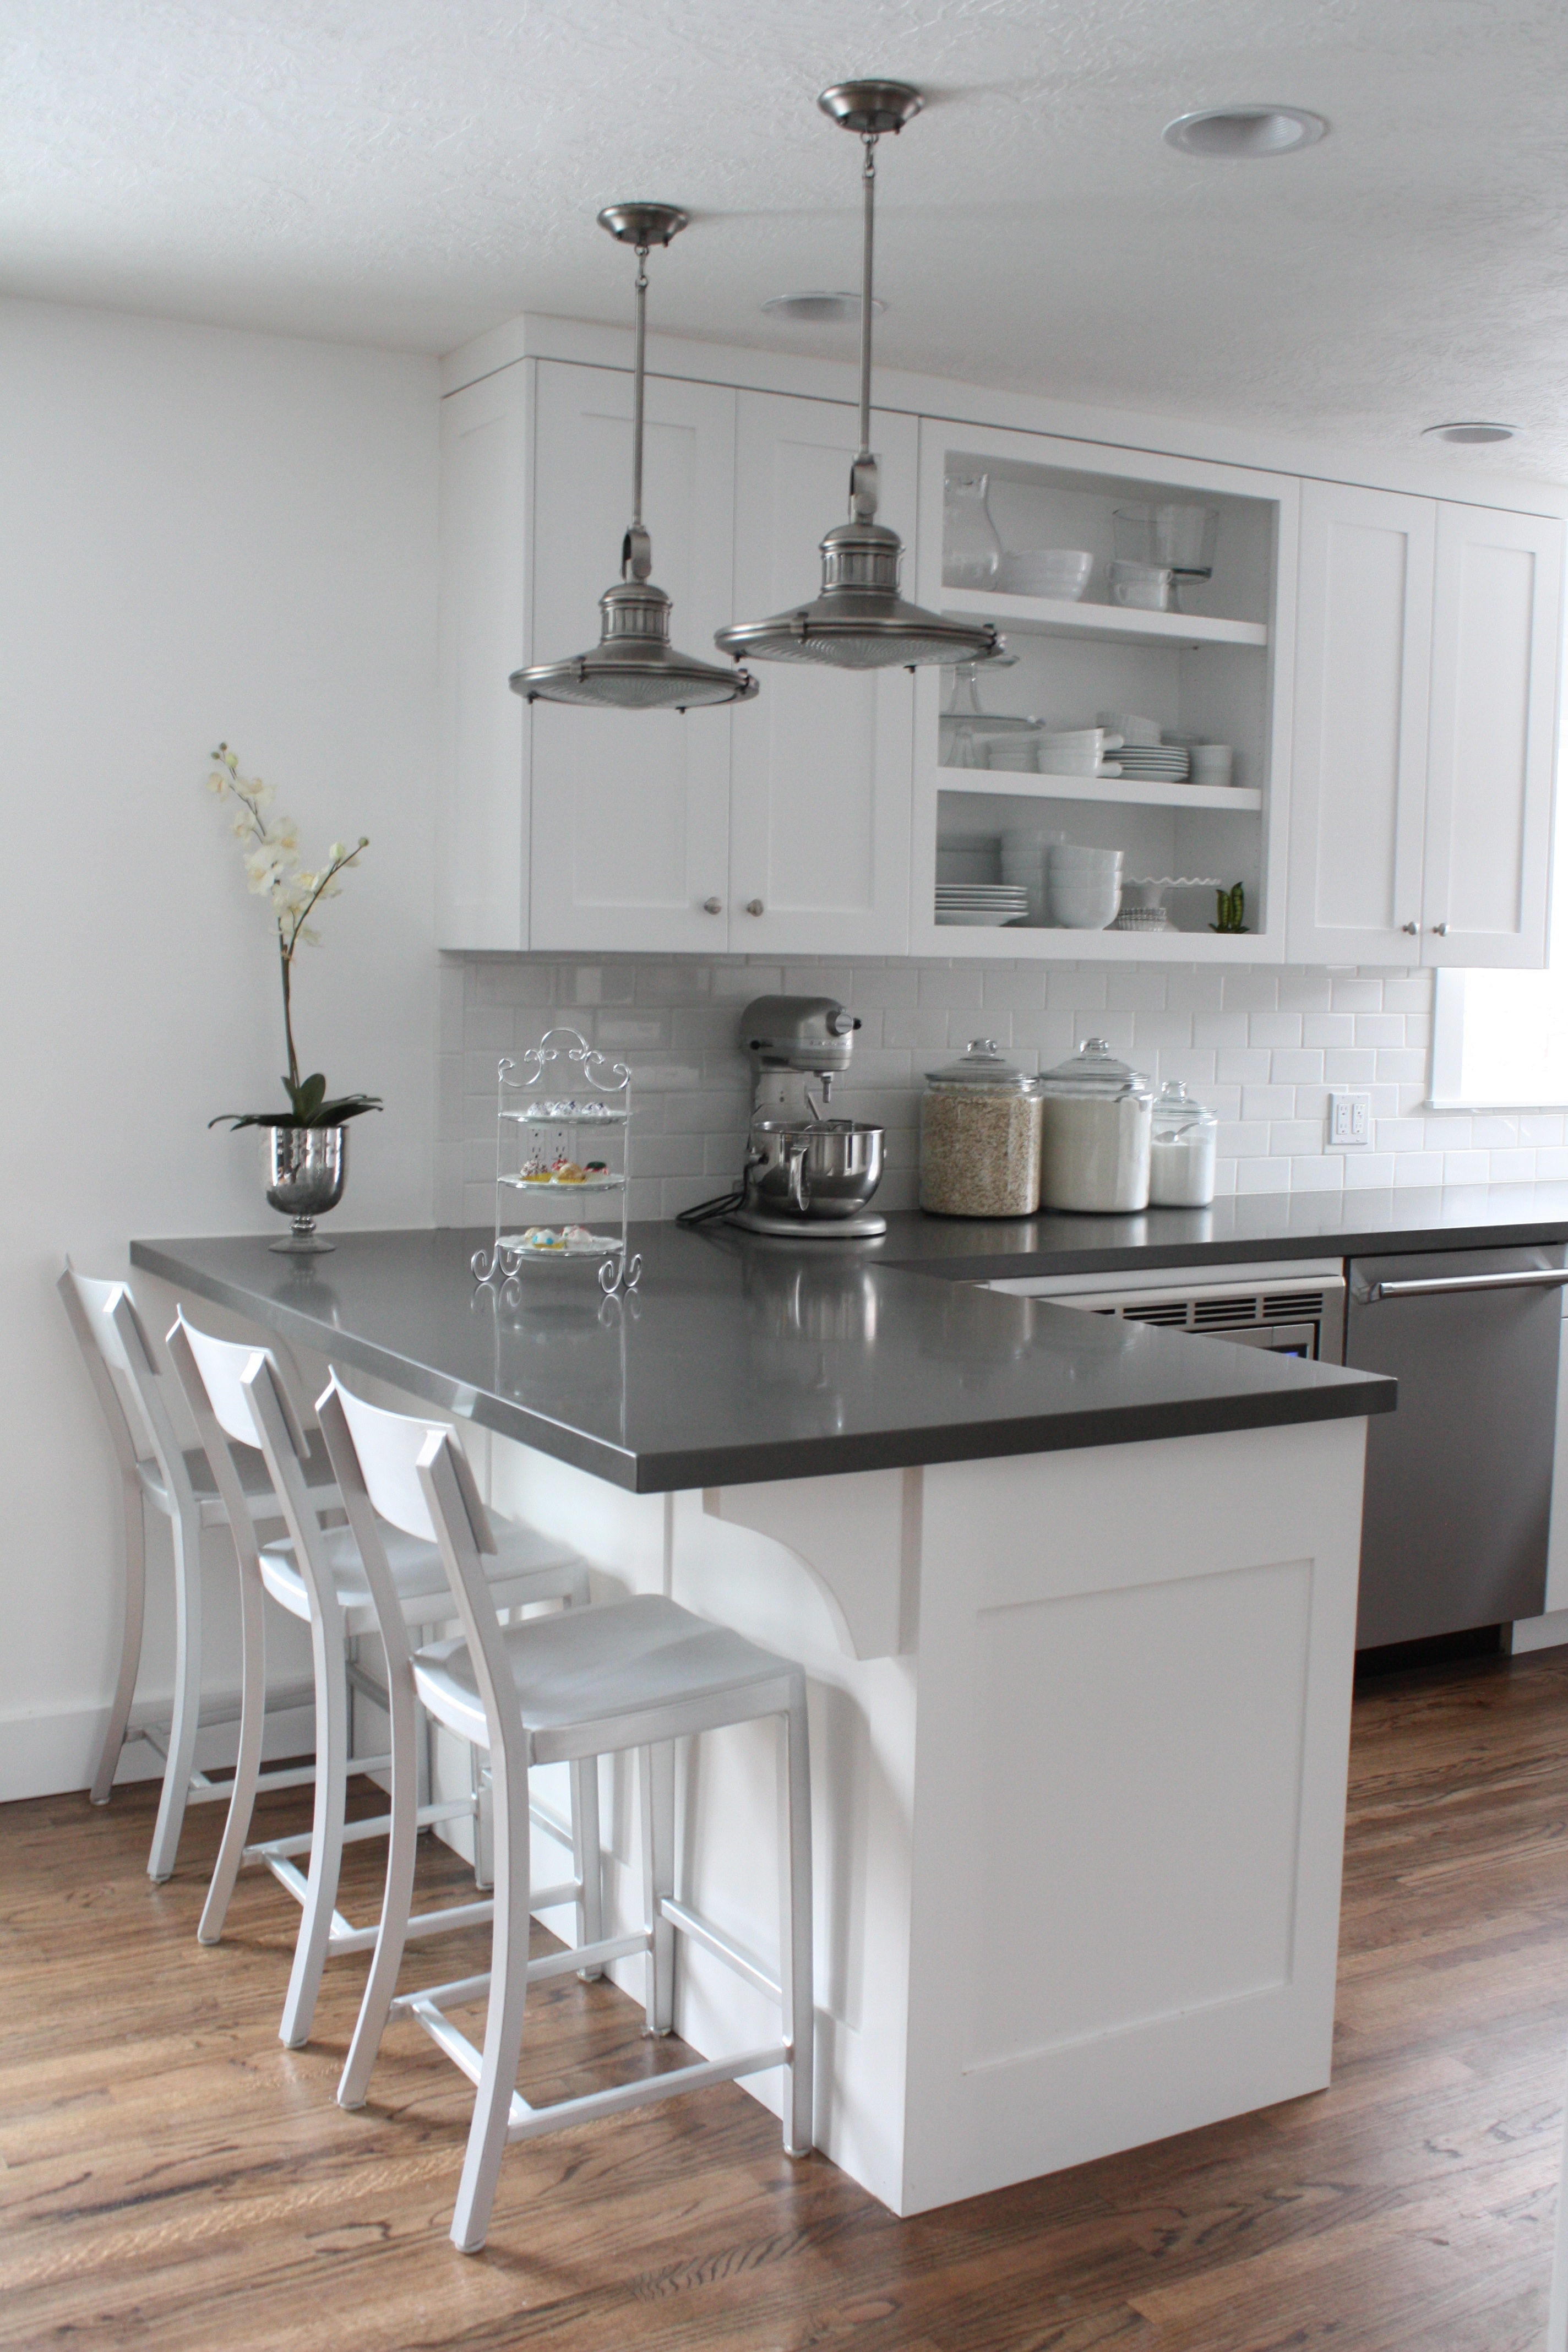 kitchen counter bar stools antique sinks with backs selection guide homesfeed